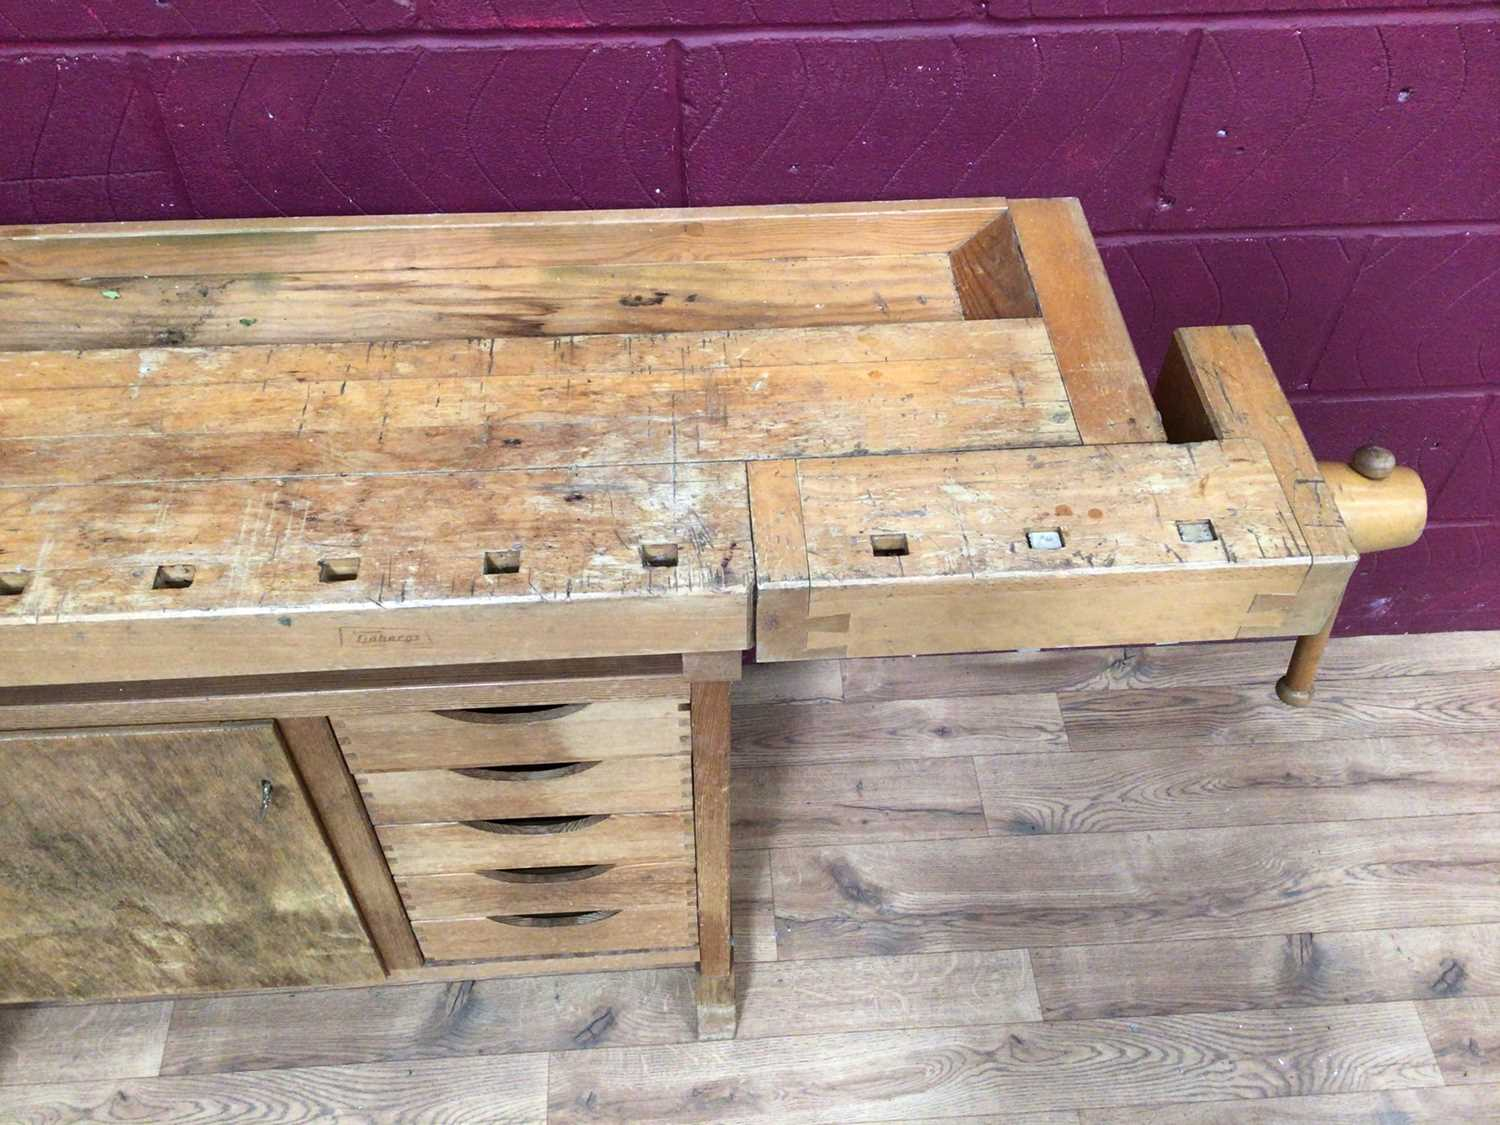 Scandanavian work bench by Gobergs of Sweden - Image 6 of 8